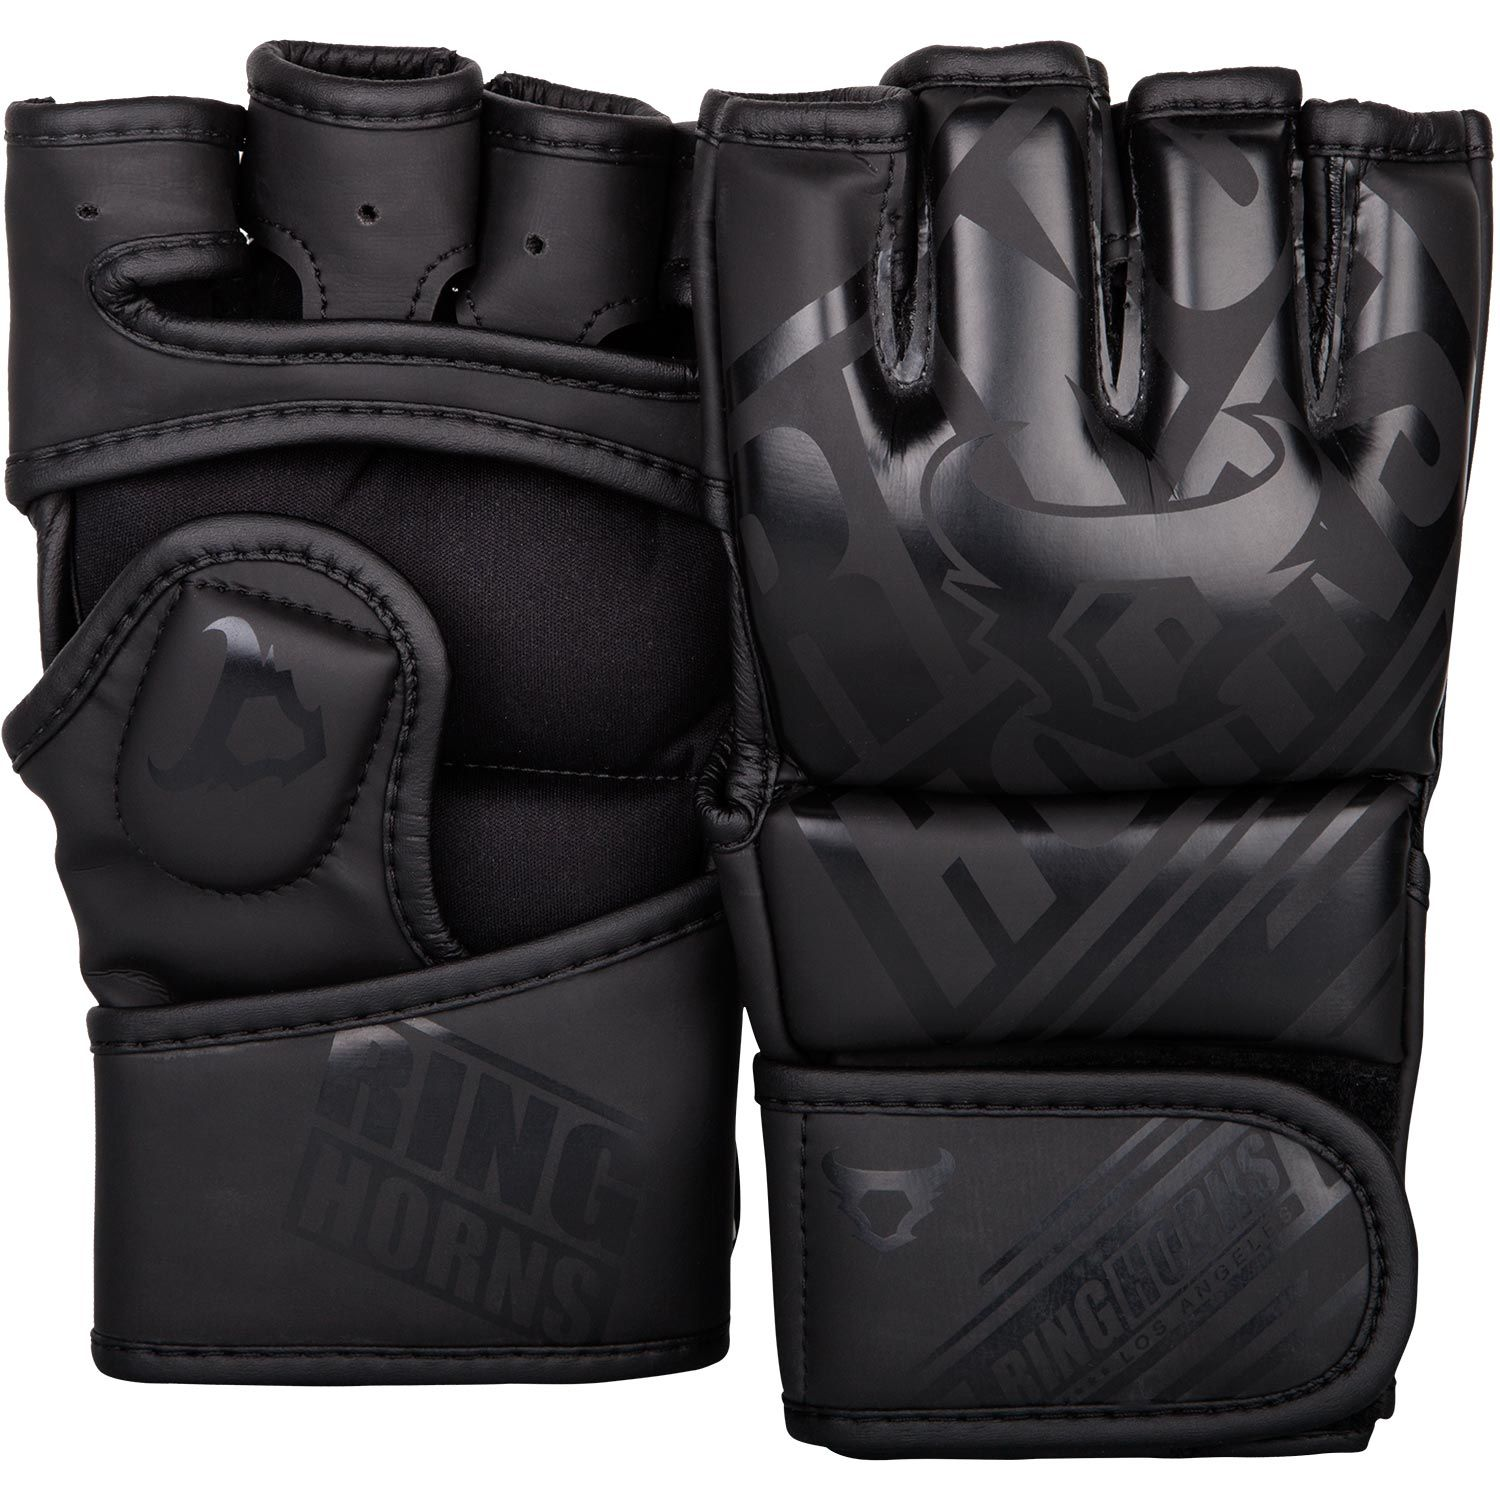 Ringhorns Nitro MMA Gloves - Black/Black